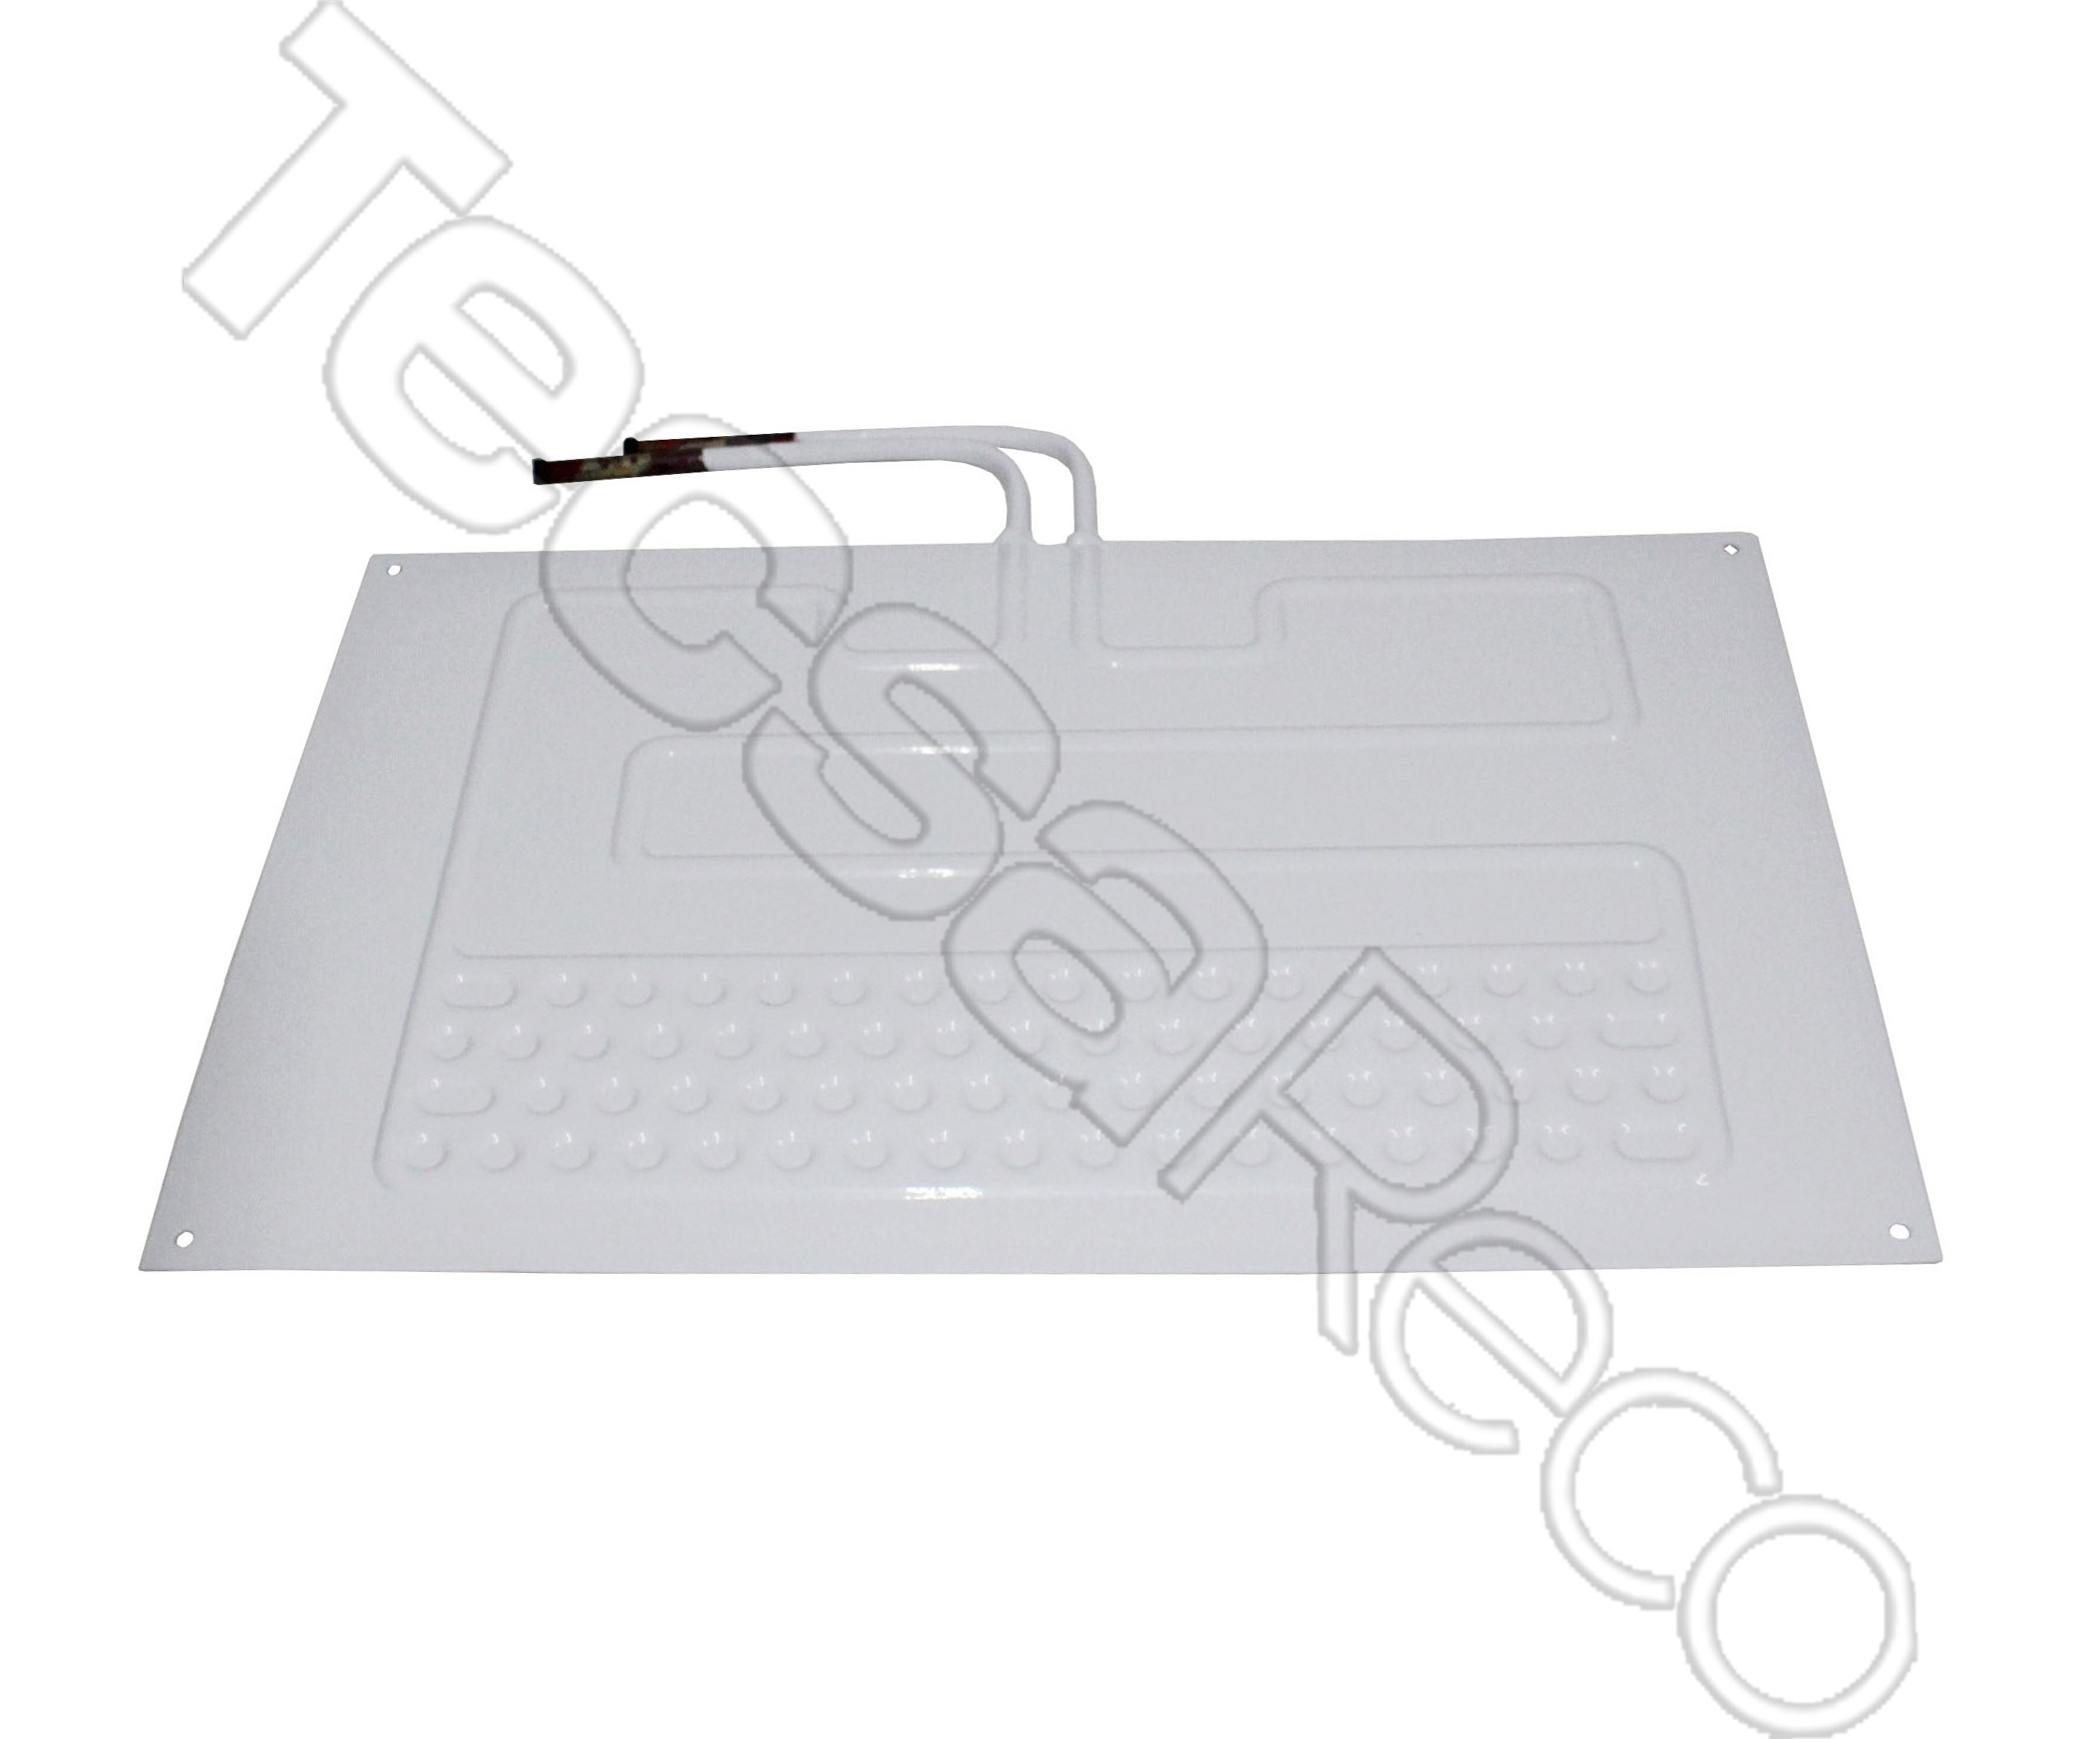 Evaporator Plate - 460 x 300mm Double Entry